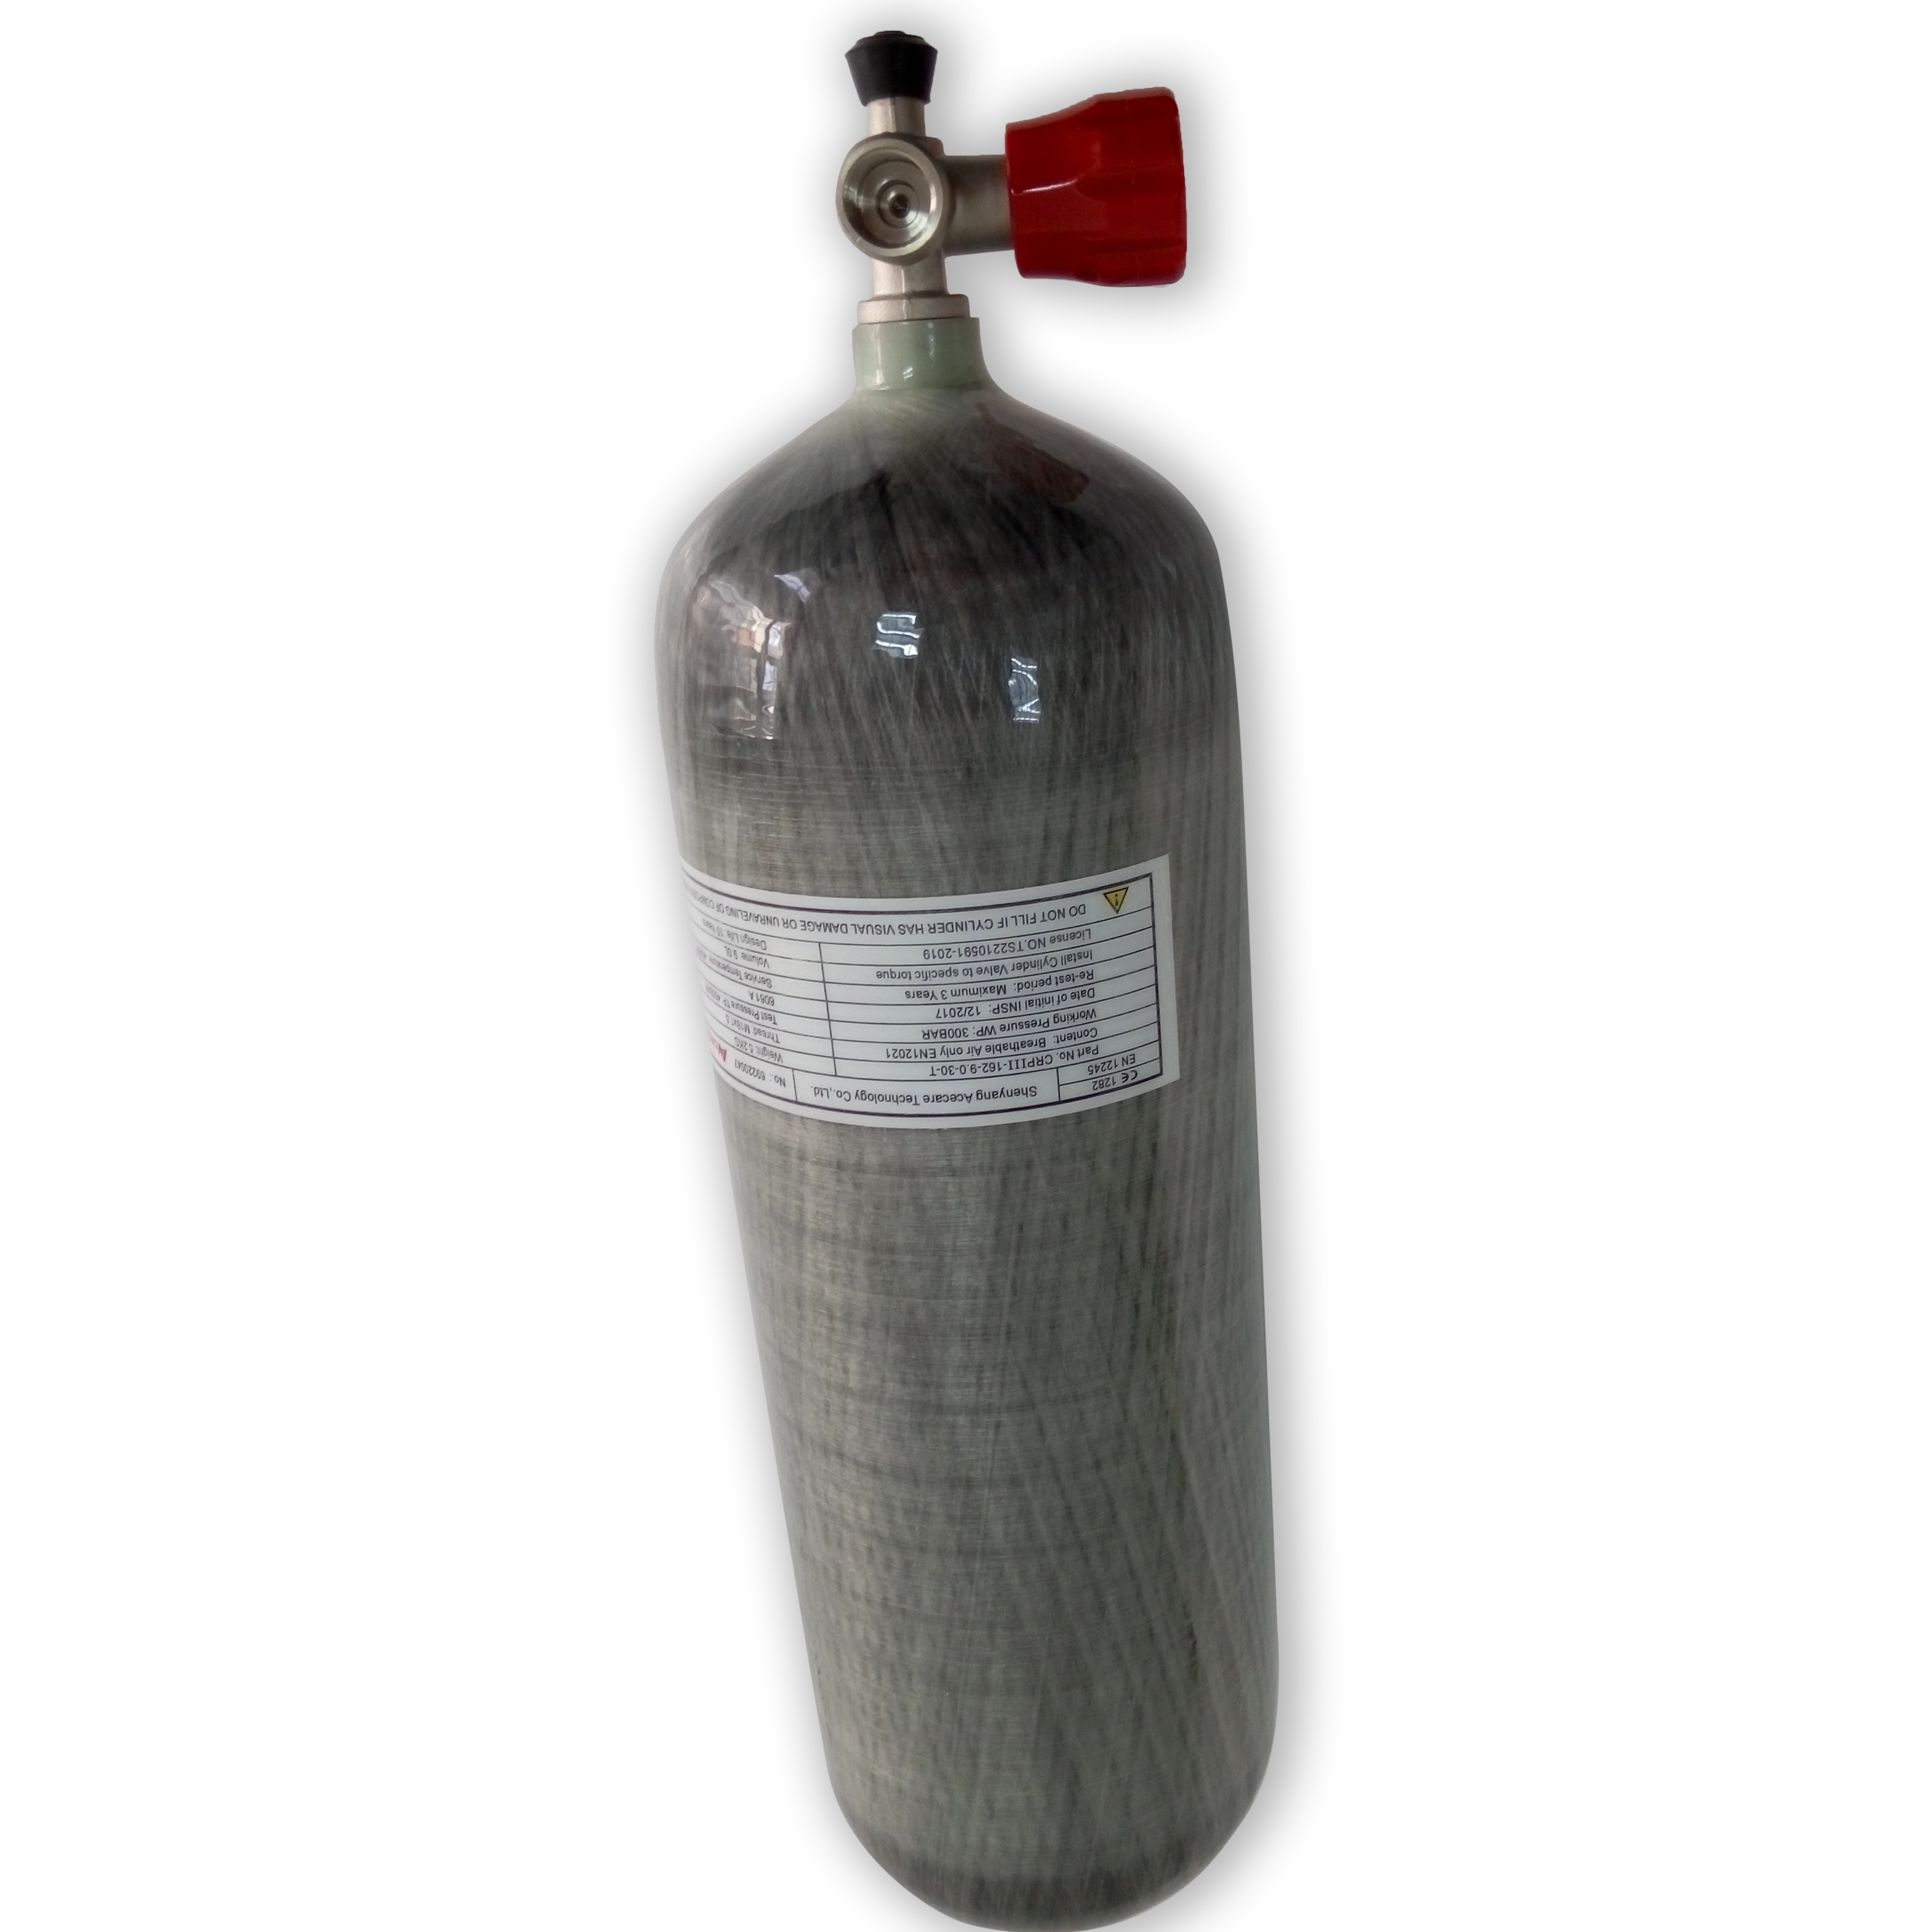 AC10911 Acecare Pcp Air Tank 9L Hpa 4500Psi M18*1.5 CE Cylinder Pcp For Paintball Paintball Equipment Red Gauge Valve Air Pcp